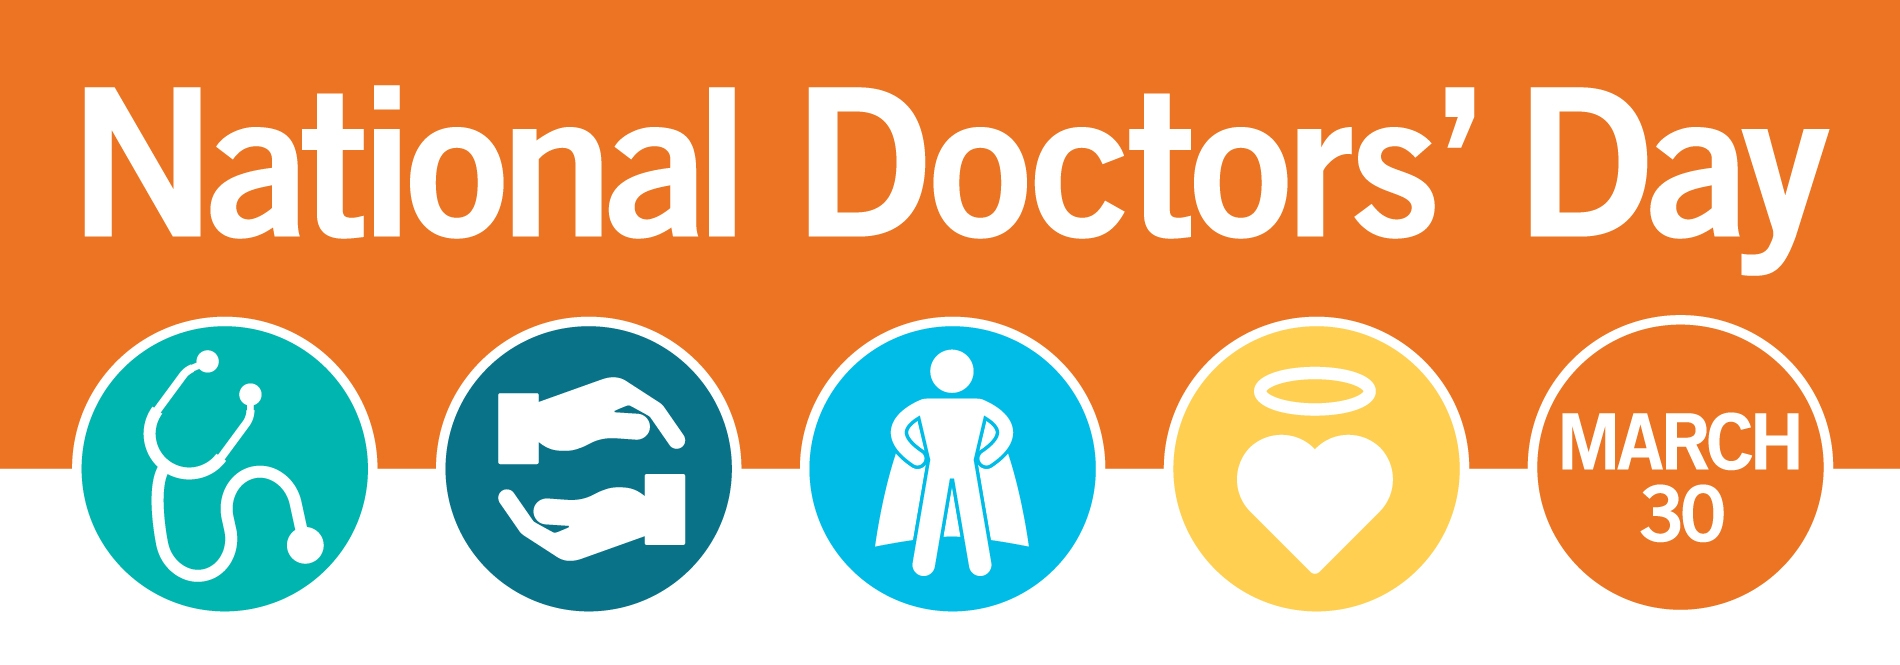 2019 National Doctors Day